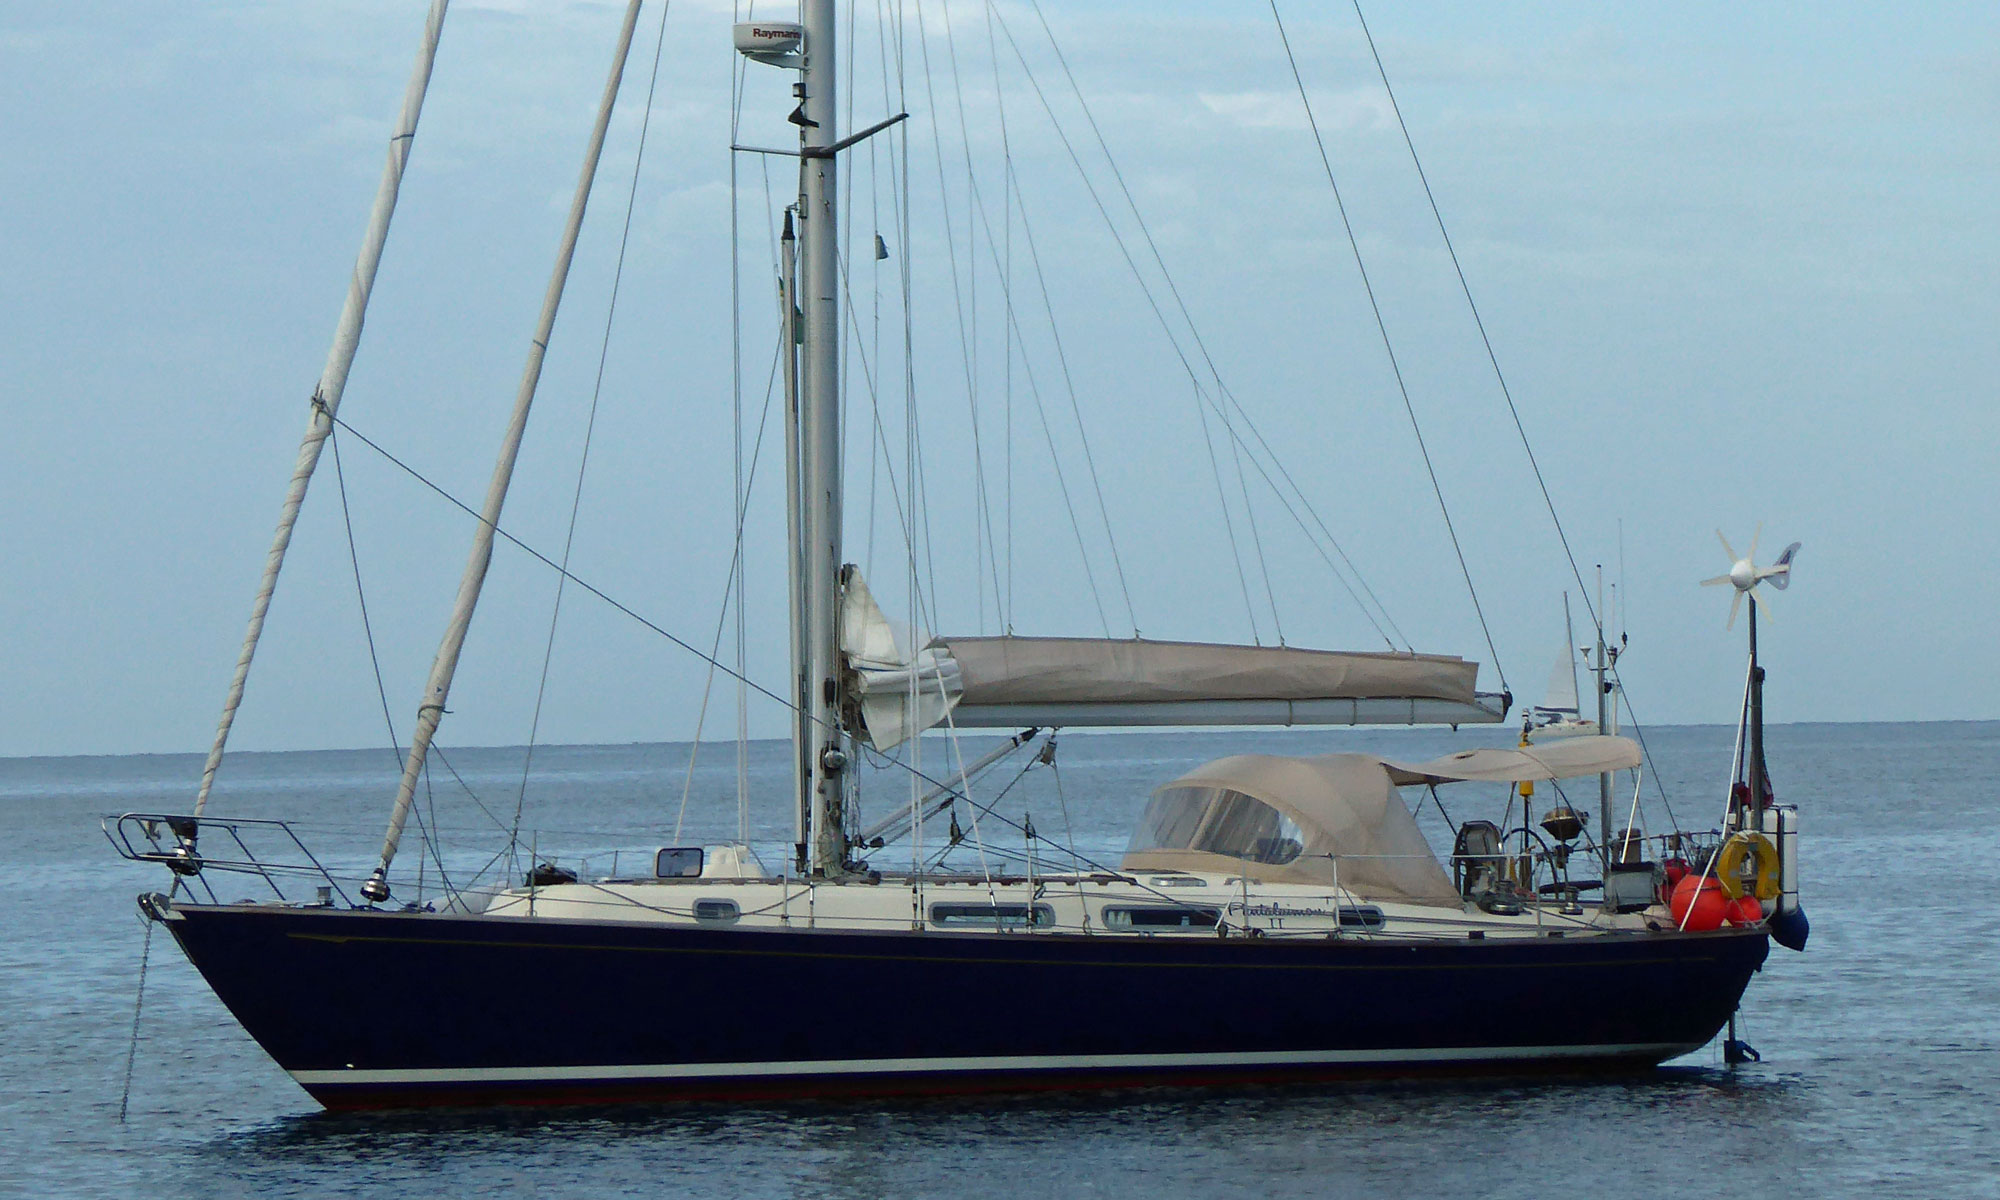 A Rustler 42 sailboat at anchor